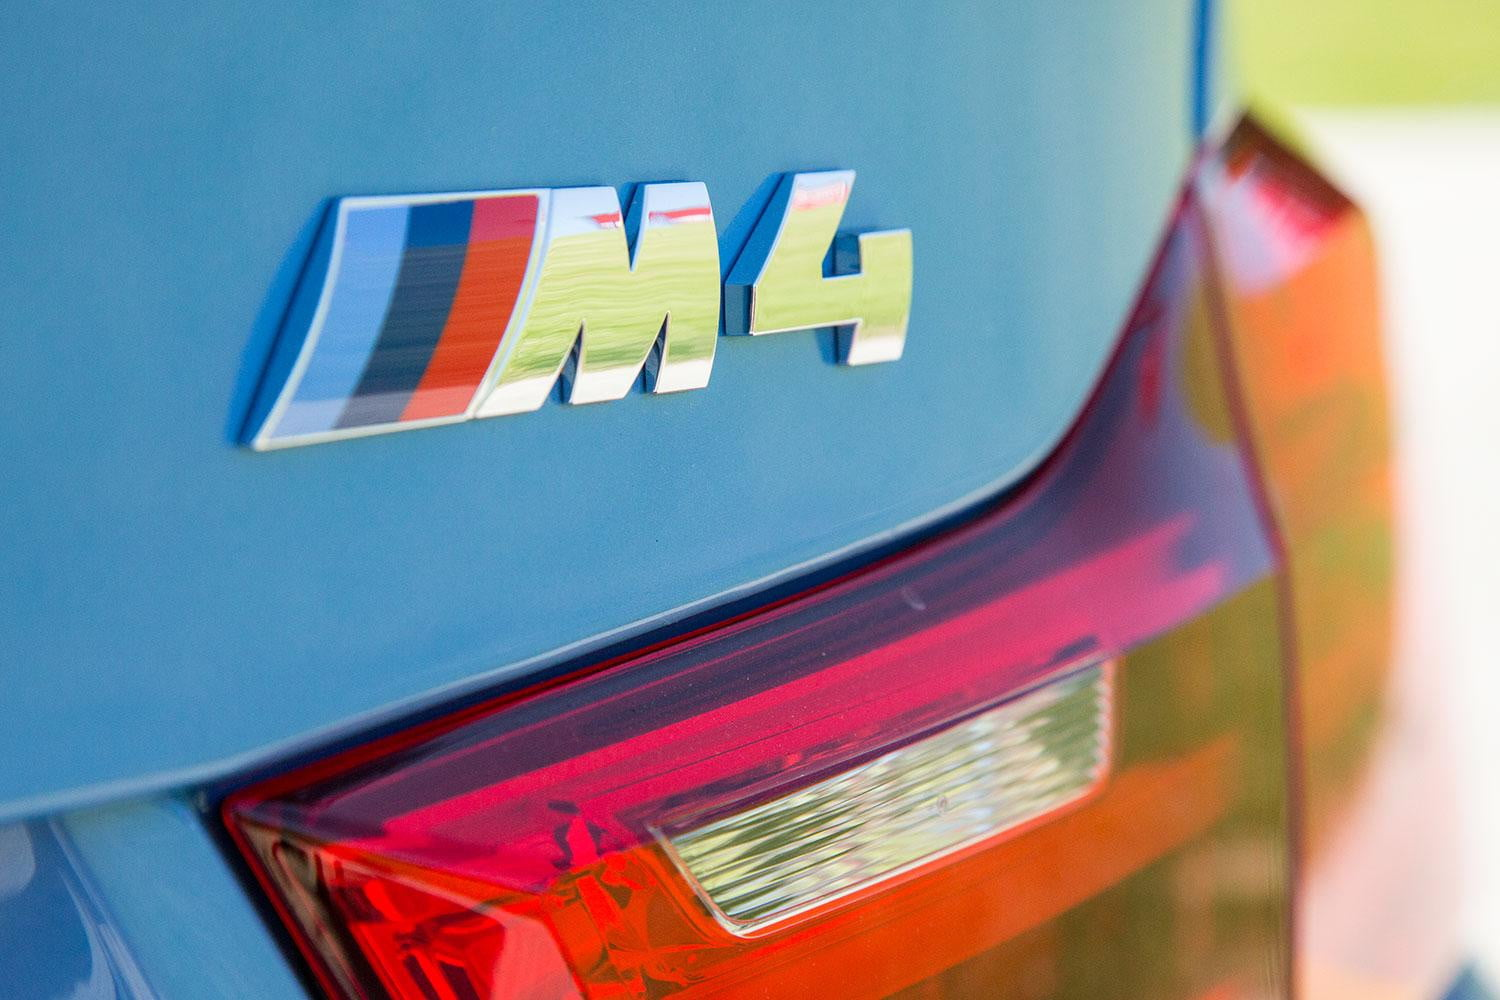 BMW M4 badge